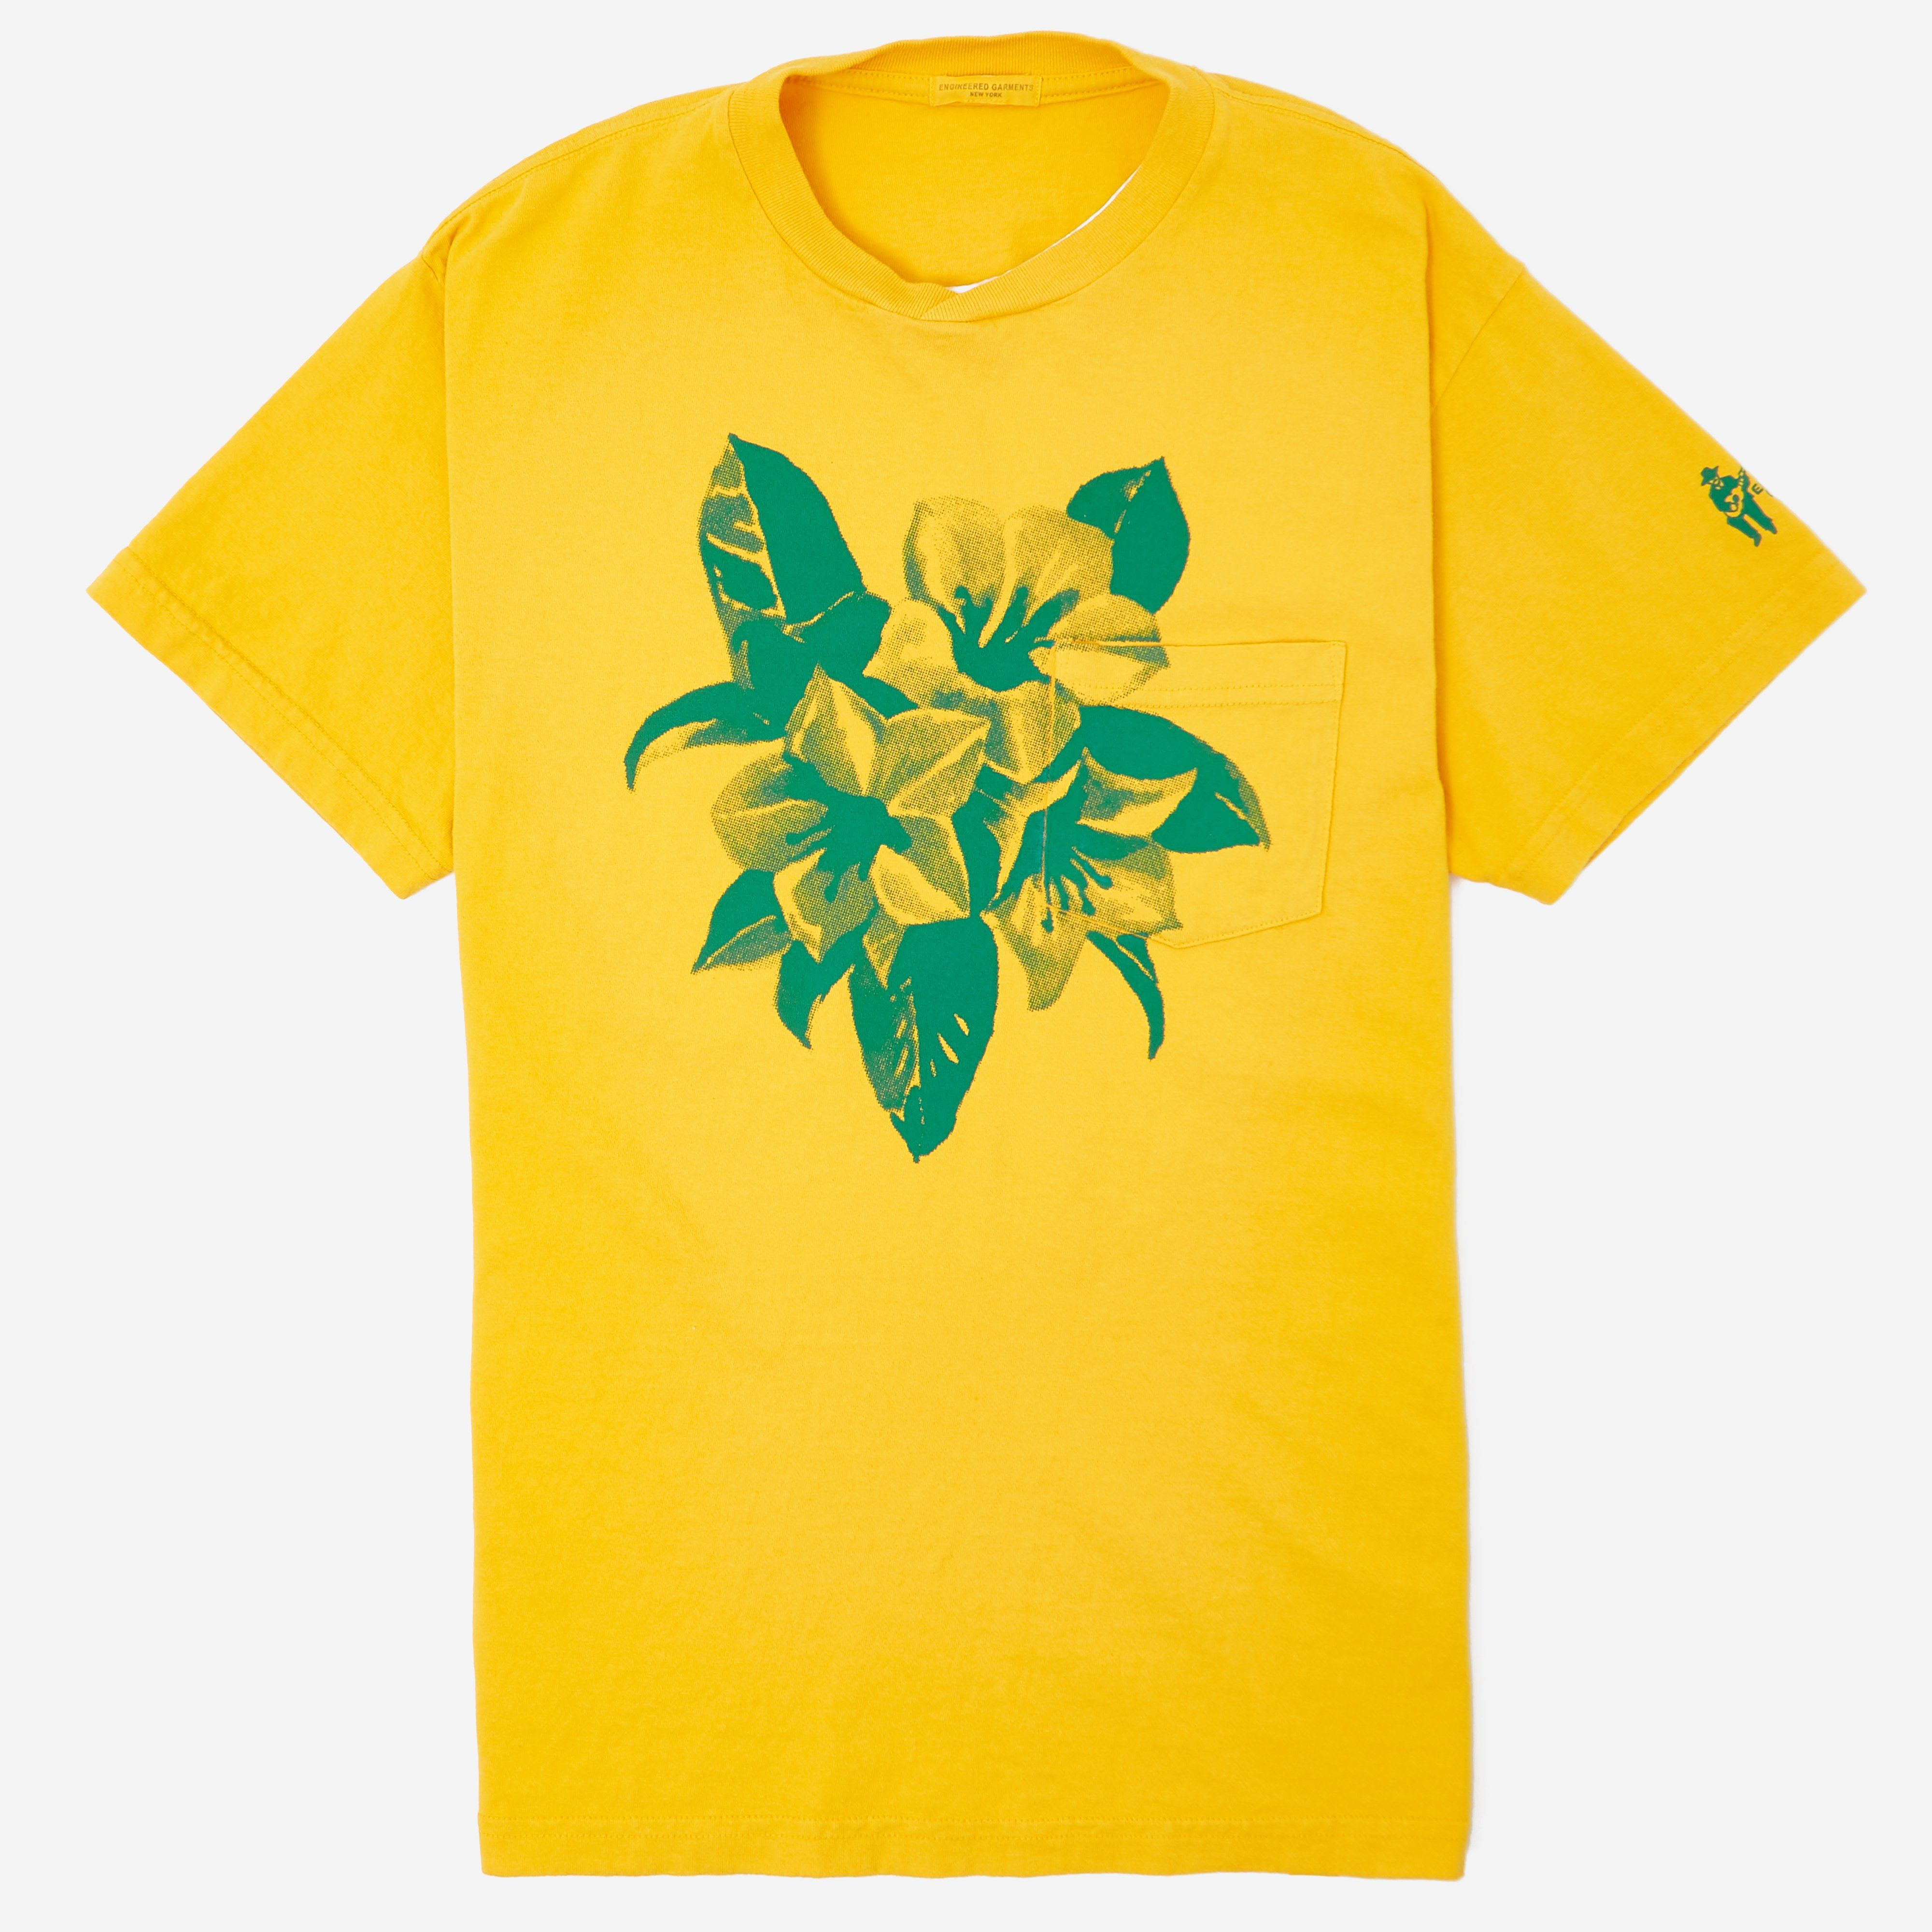 Engineered Garments Gold Floral Printed T-shirt